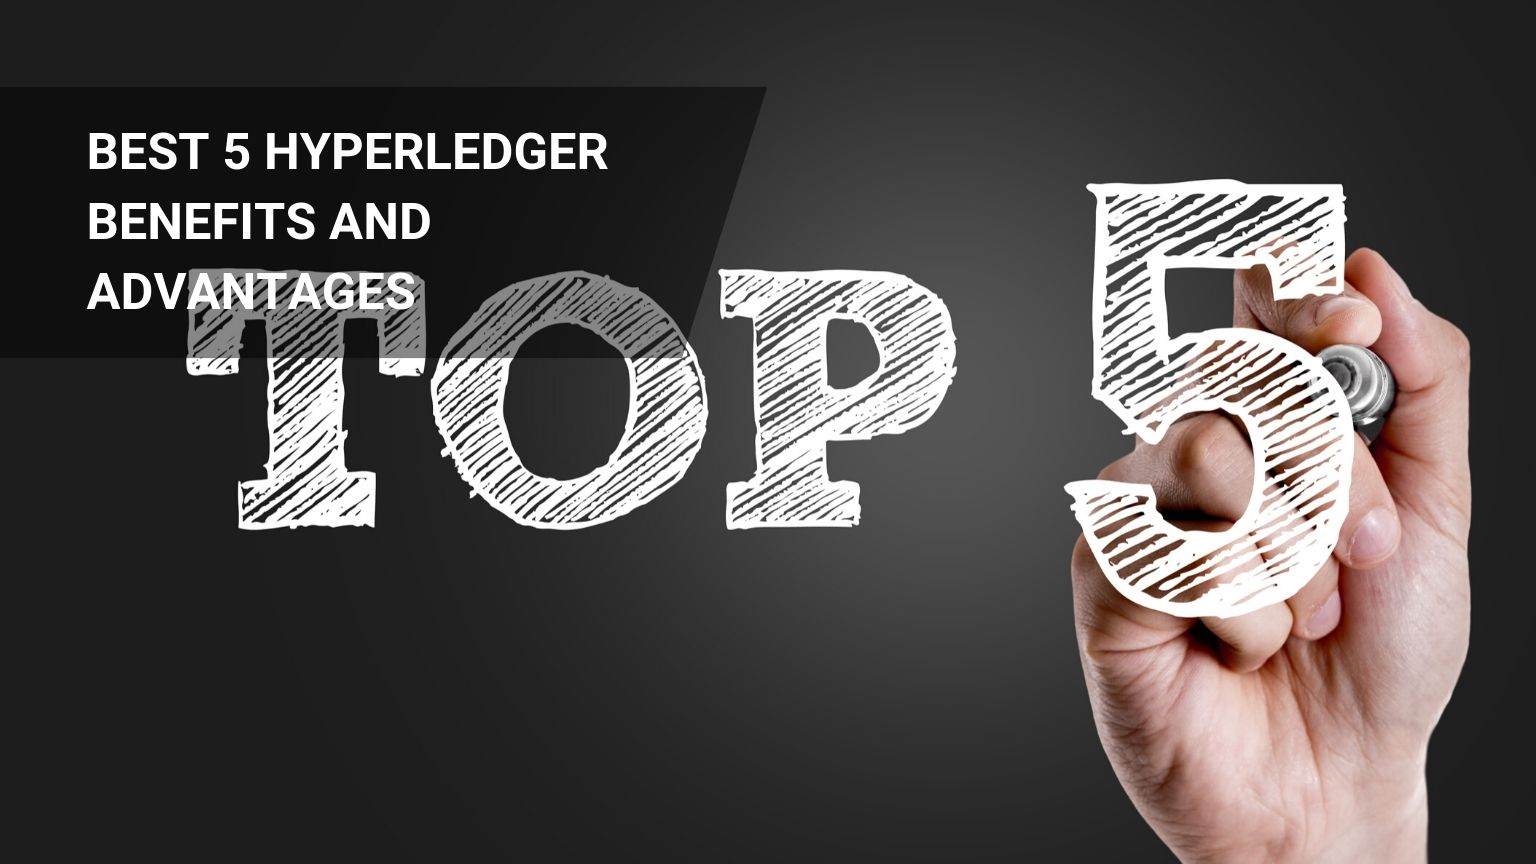 Best 5 Hyperledger Benefits and Amazing Advantages!